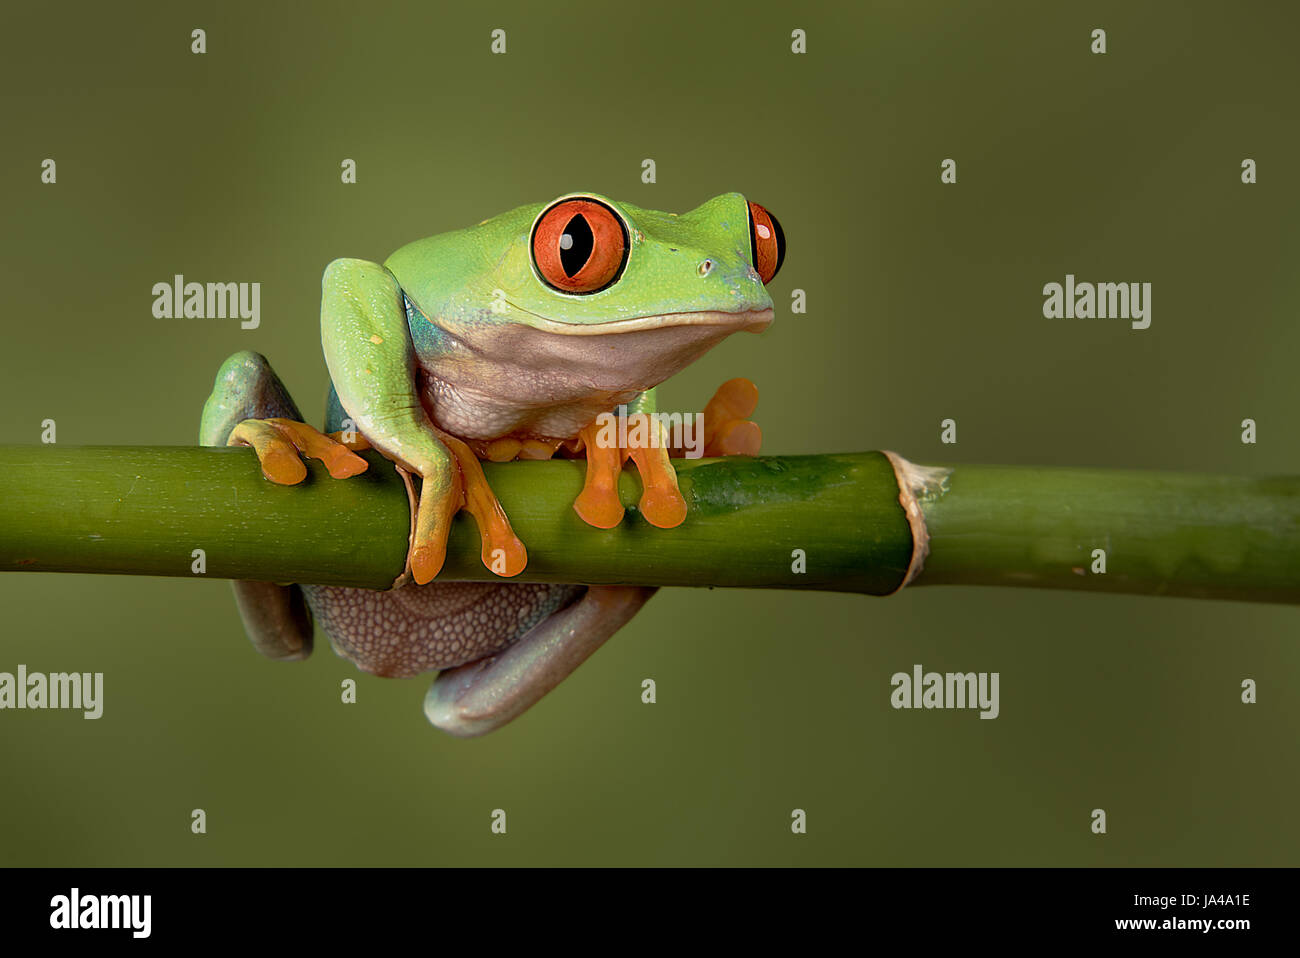 A close up portrait of a red eyed tree frog hanging on to a bamboo shoot looking forward and about to fall Stock Photo